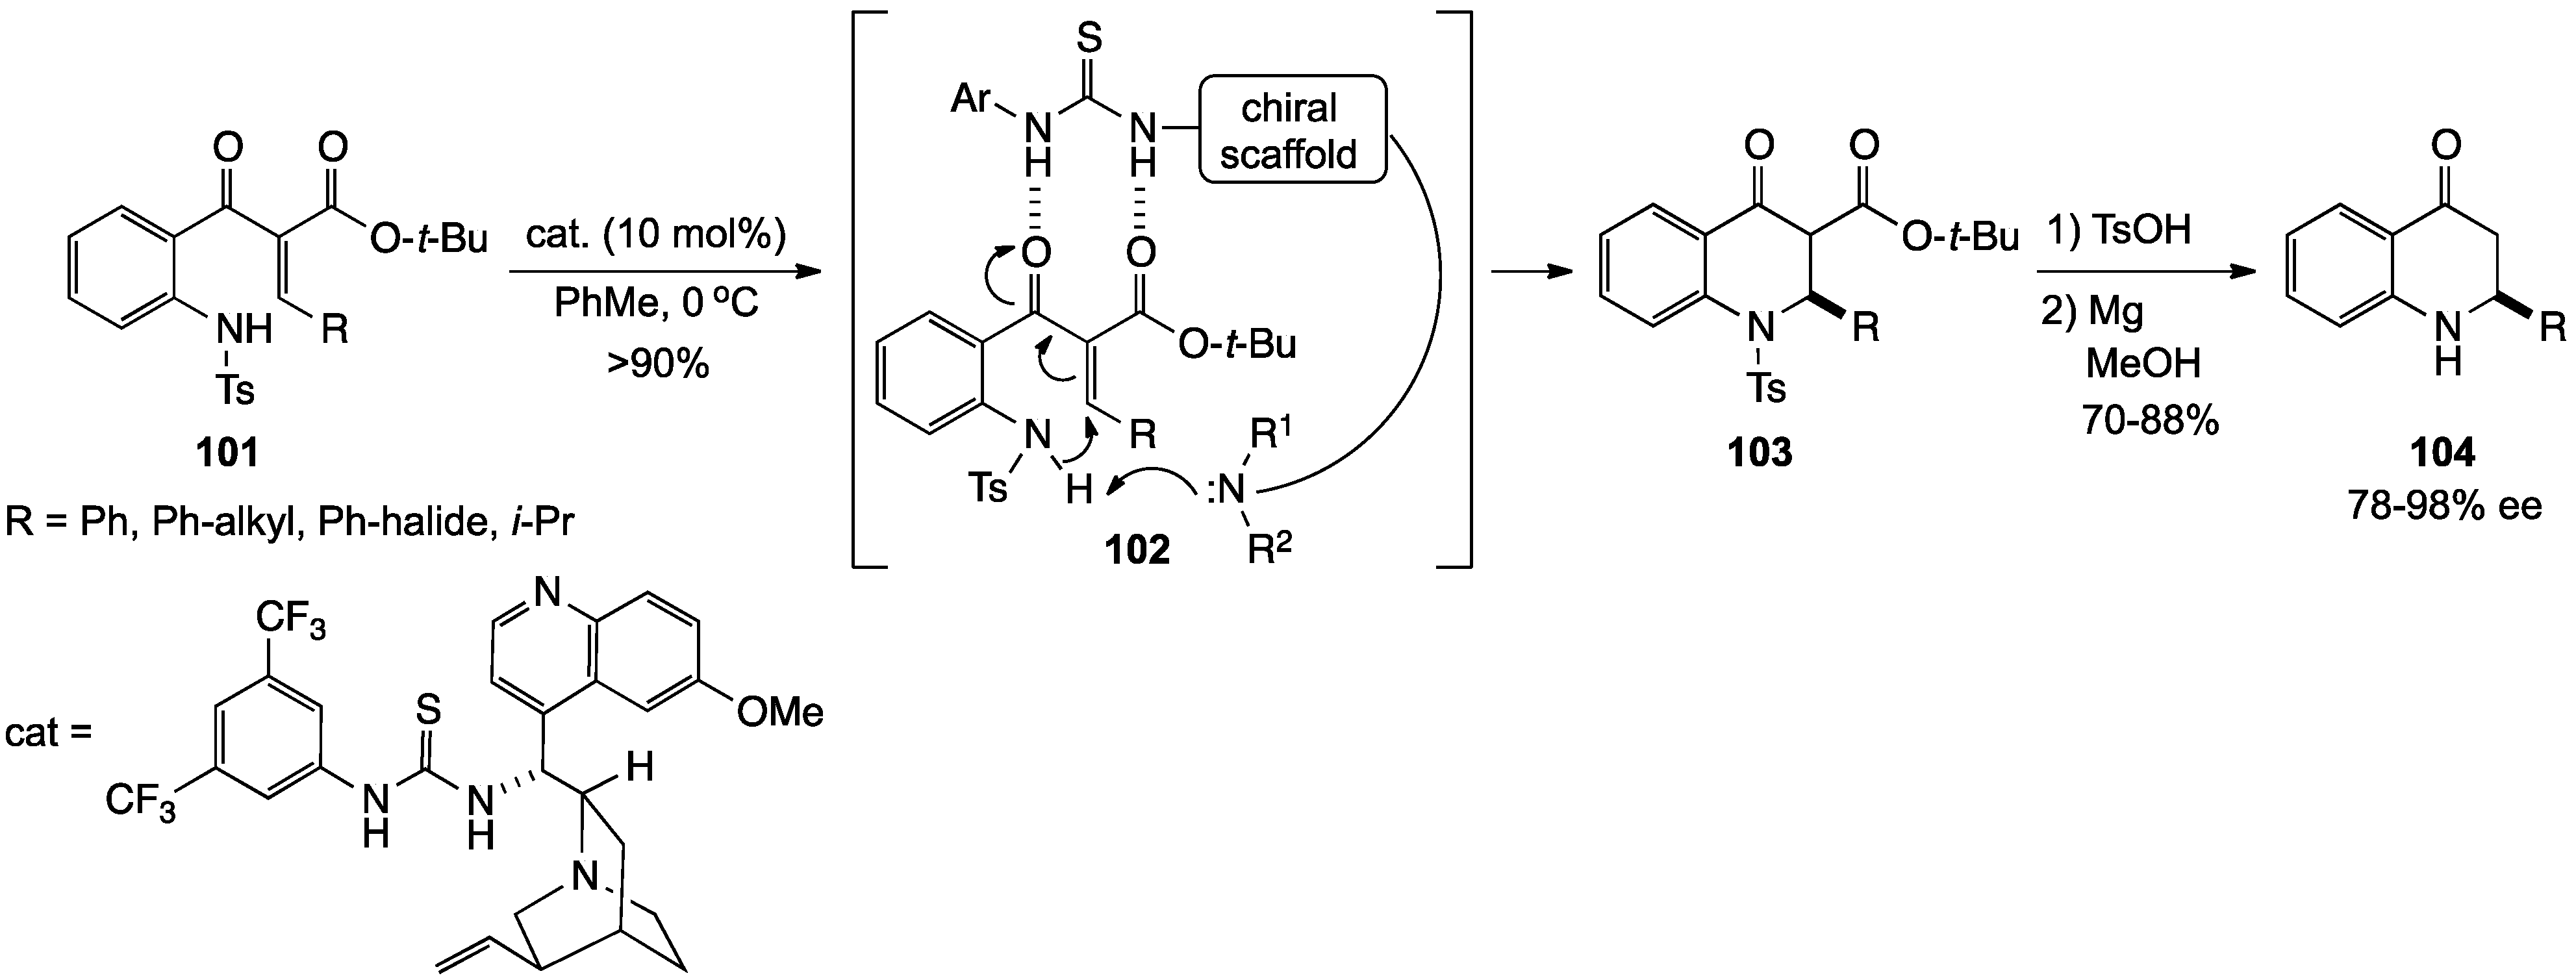 Molecules Free Full Text Recent Syntheses Of 1234 Simple And Useful Led Circuits Srihari Rao 19 00204 G032